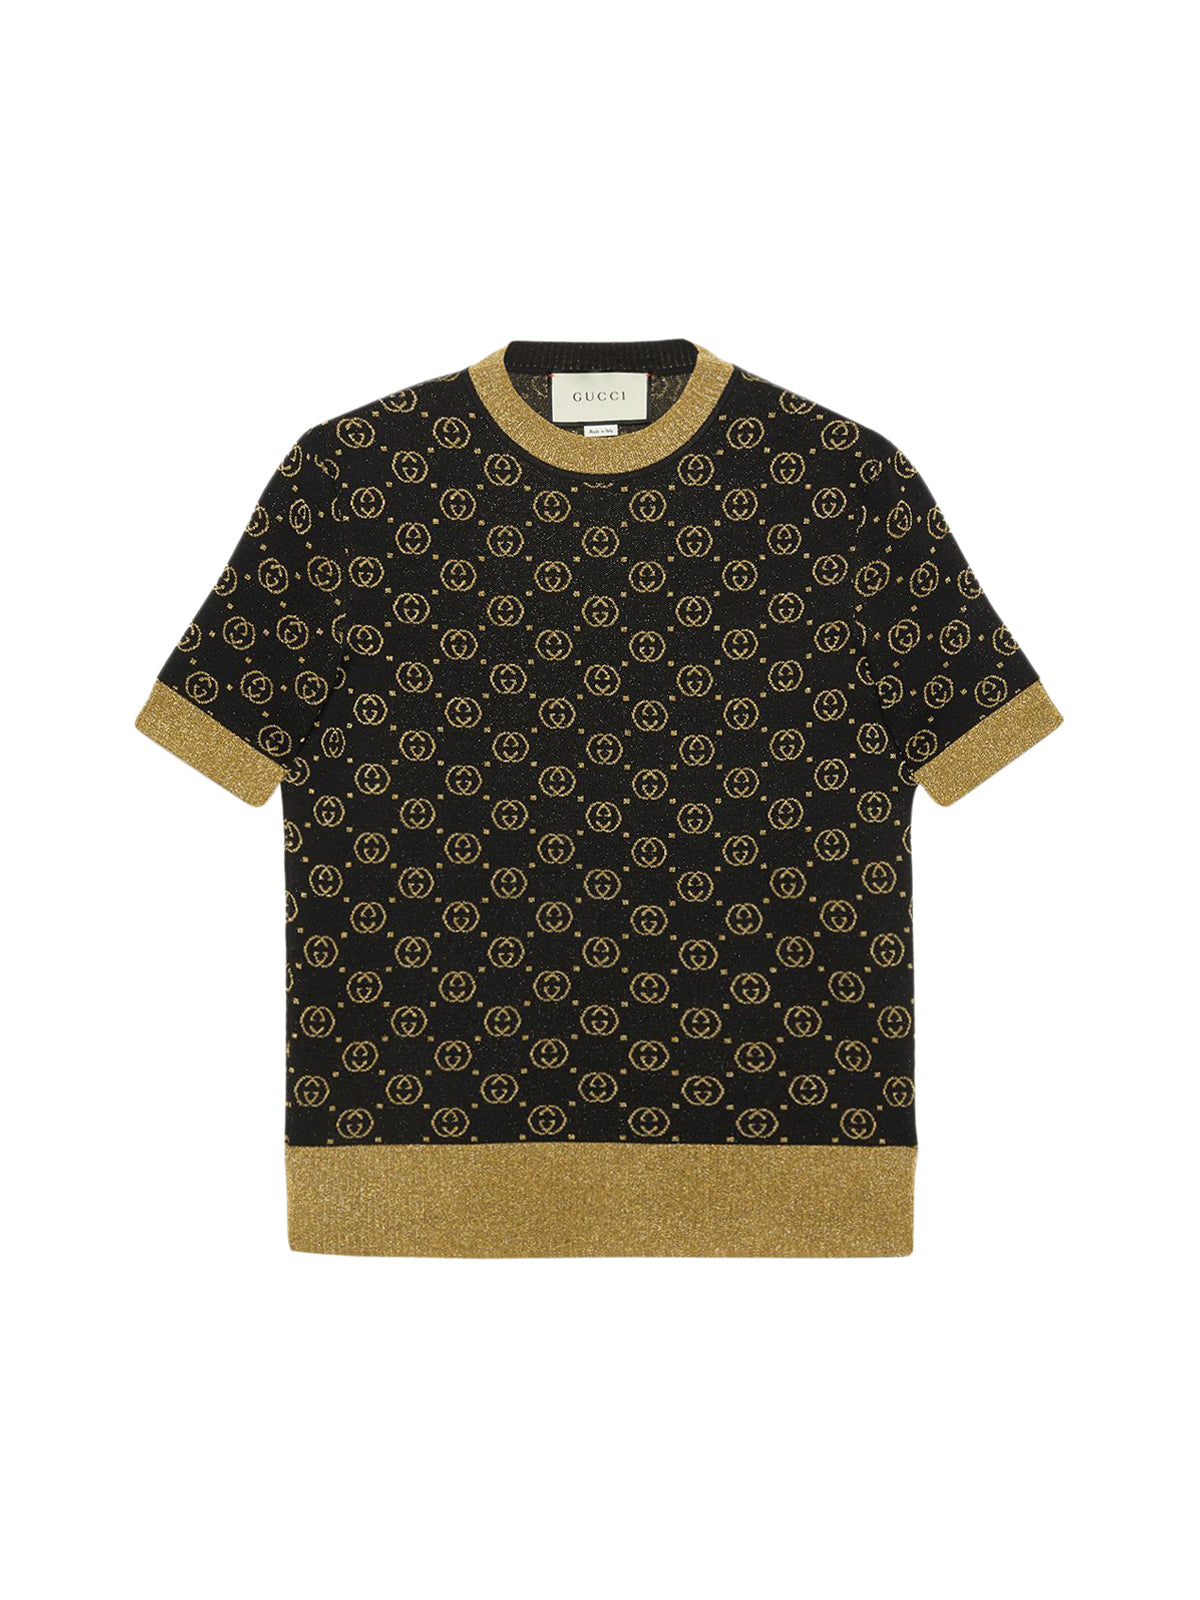 Wool top with GG motif